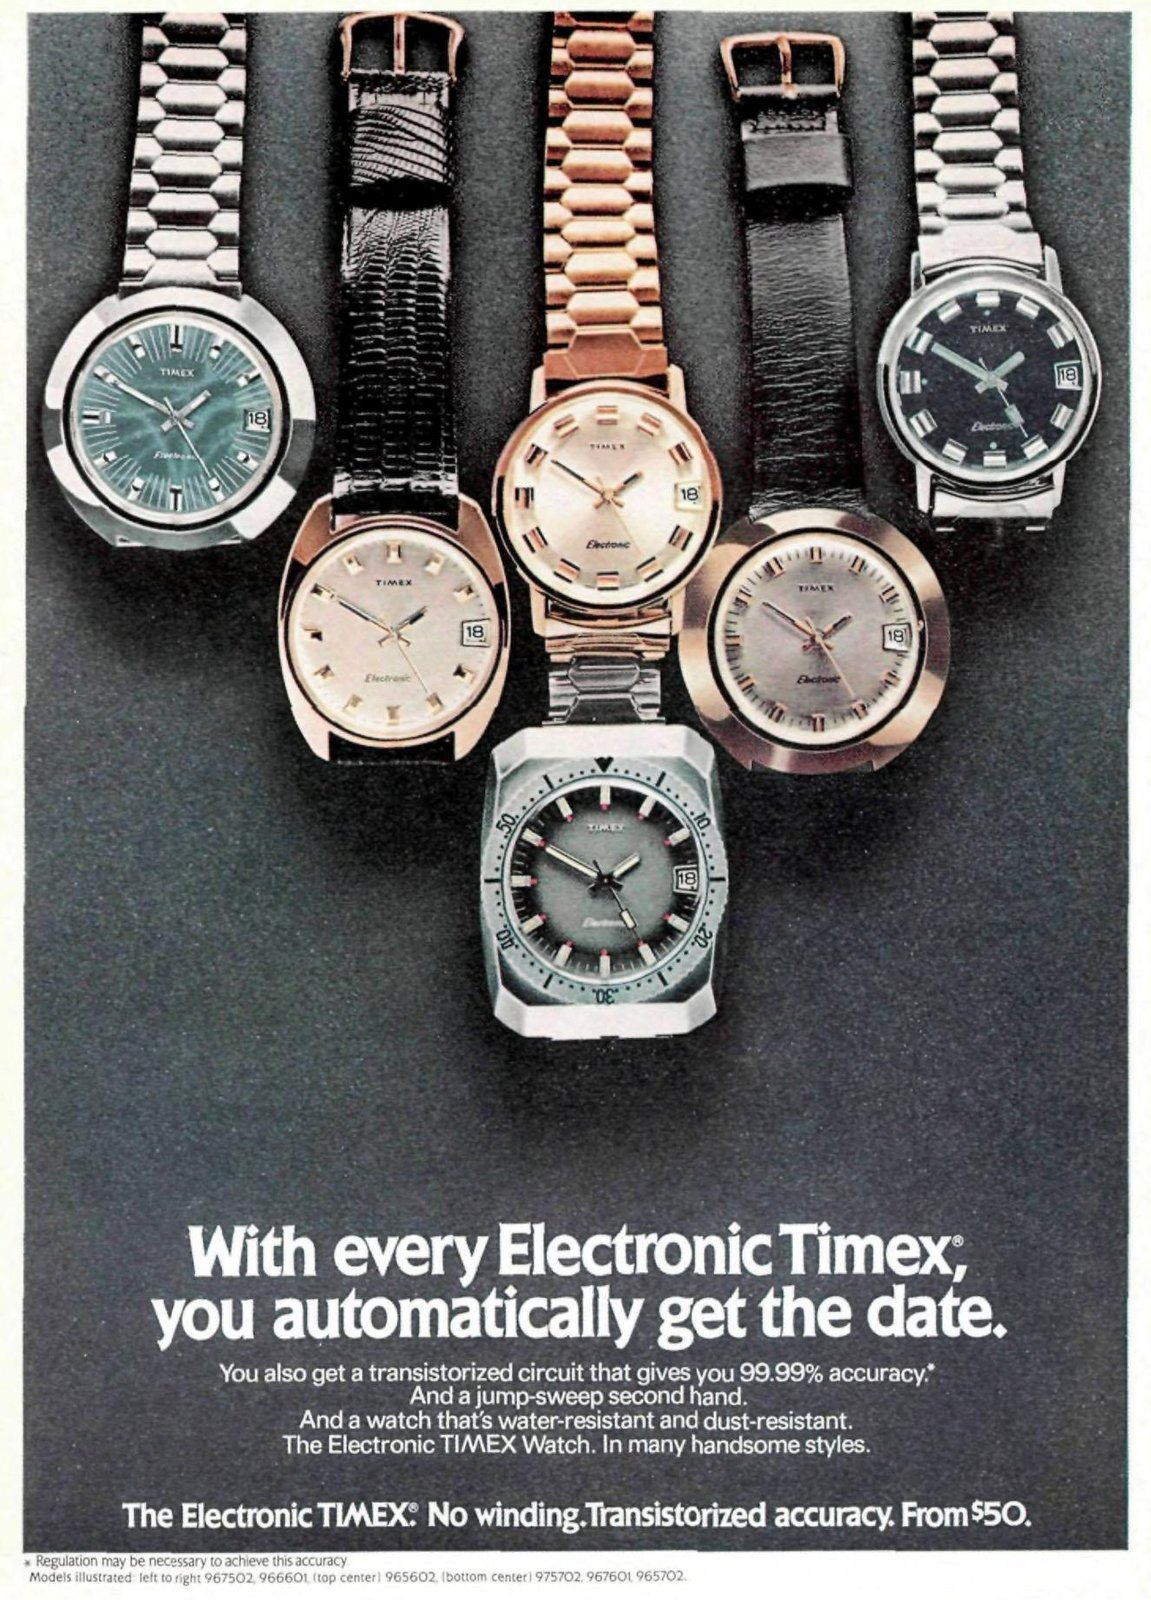 Electronic Timex watches for men - time and date (1972)